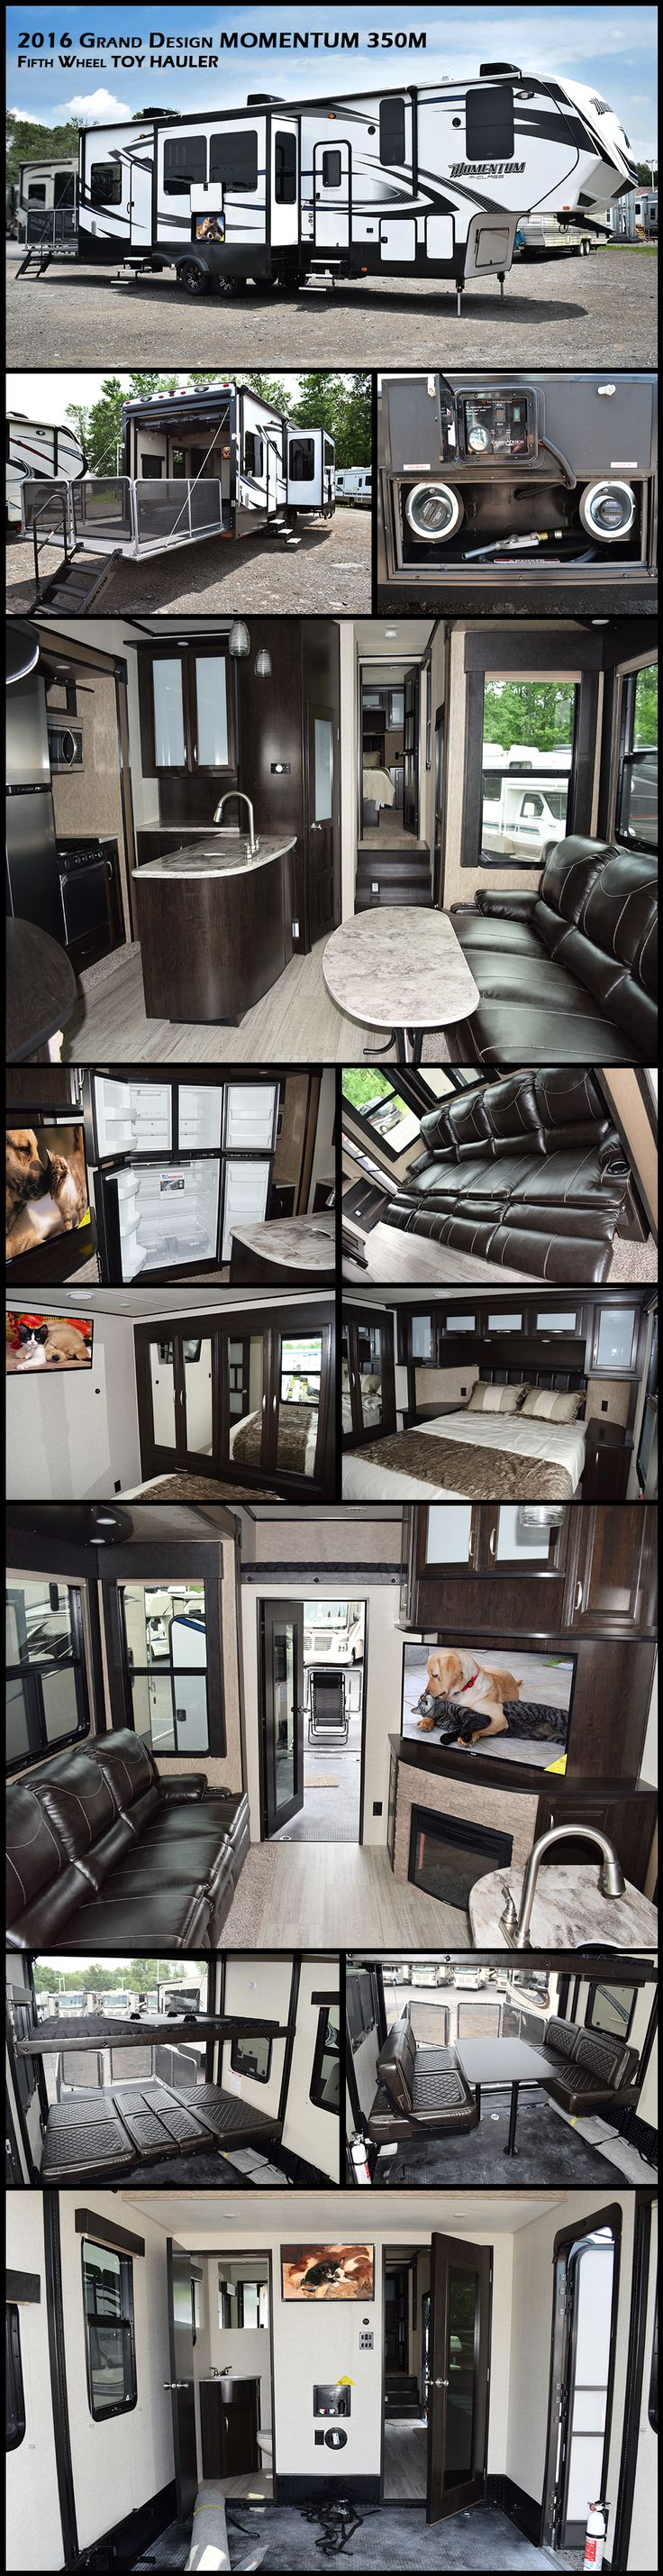 Grand design solitude problems - 2016 Grand Design Momentum 350m Fifth Wheel Toy Hauler This 350m Has The Luxury And